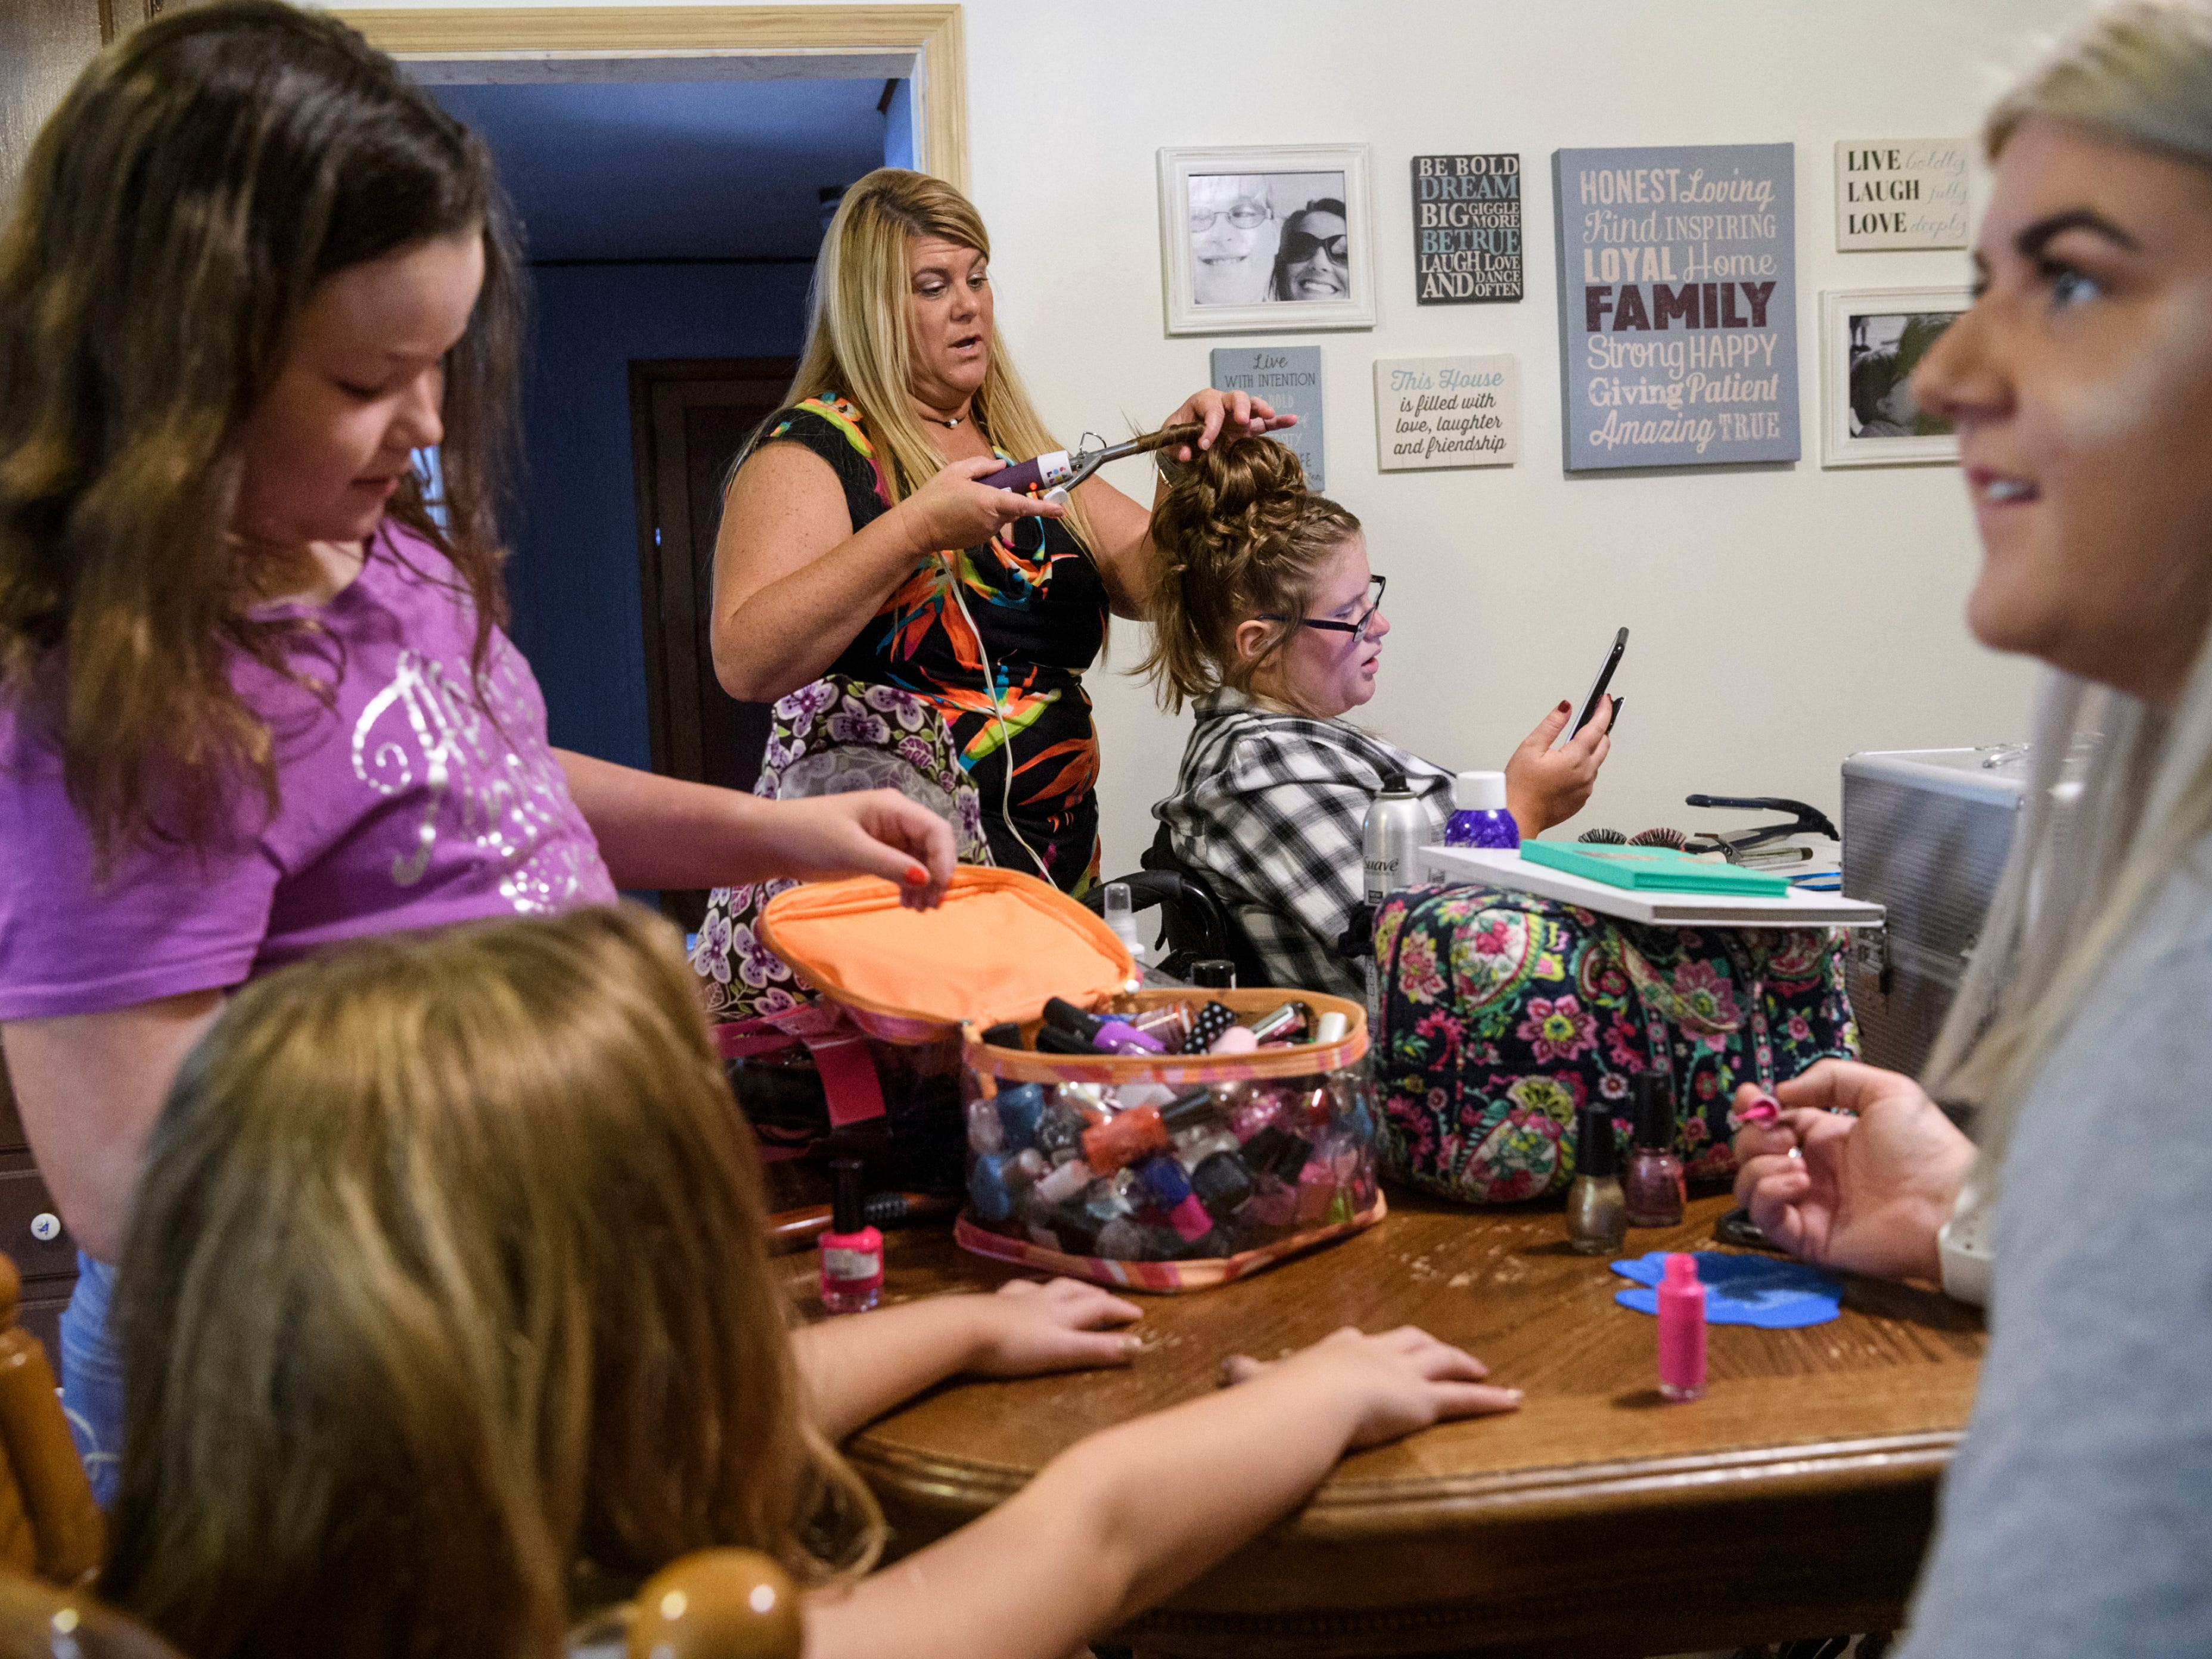 Ali Shanks, back right, receives a fancy updo from her Aunt Shawn O'Nan, back left, as Addison Swanson, front left to right, and Ella Swanson pick out nail polish and make-up for Kylie O'Nan to help them apply to their faces and nails while preparing for the Miss Golden pageant at the Shanks household in Evansville, Saturday morning, July 28, 2018. The kitchen was filled sounds of laughter and pop music as the girls helped Ali get ready for her fourth Miss Golden pageant.